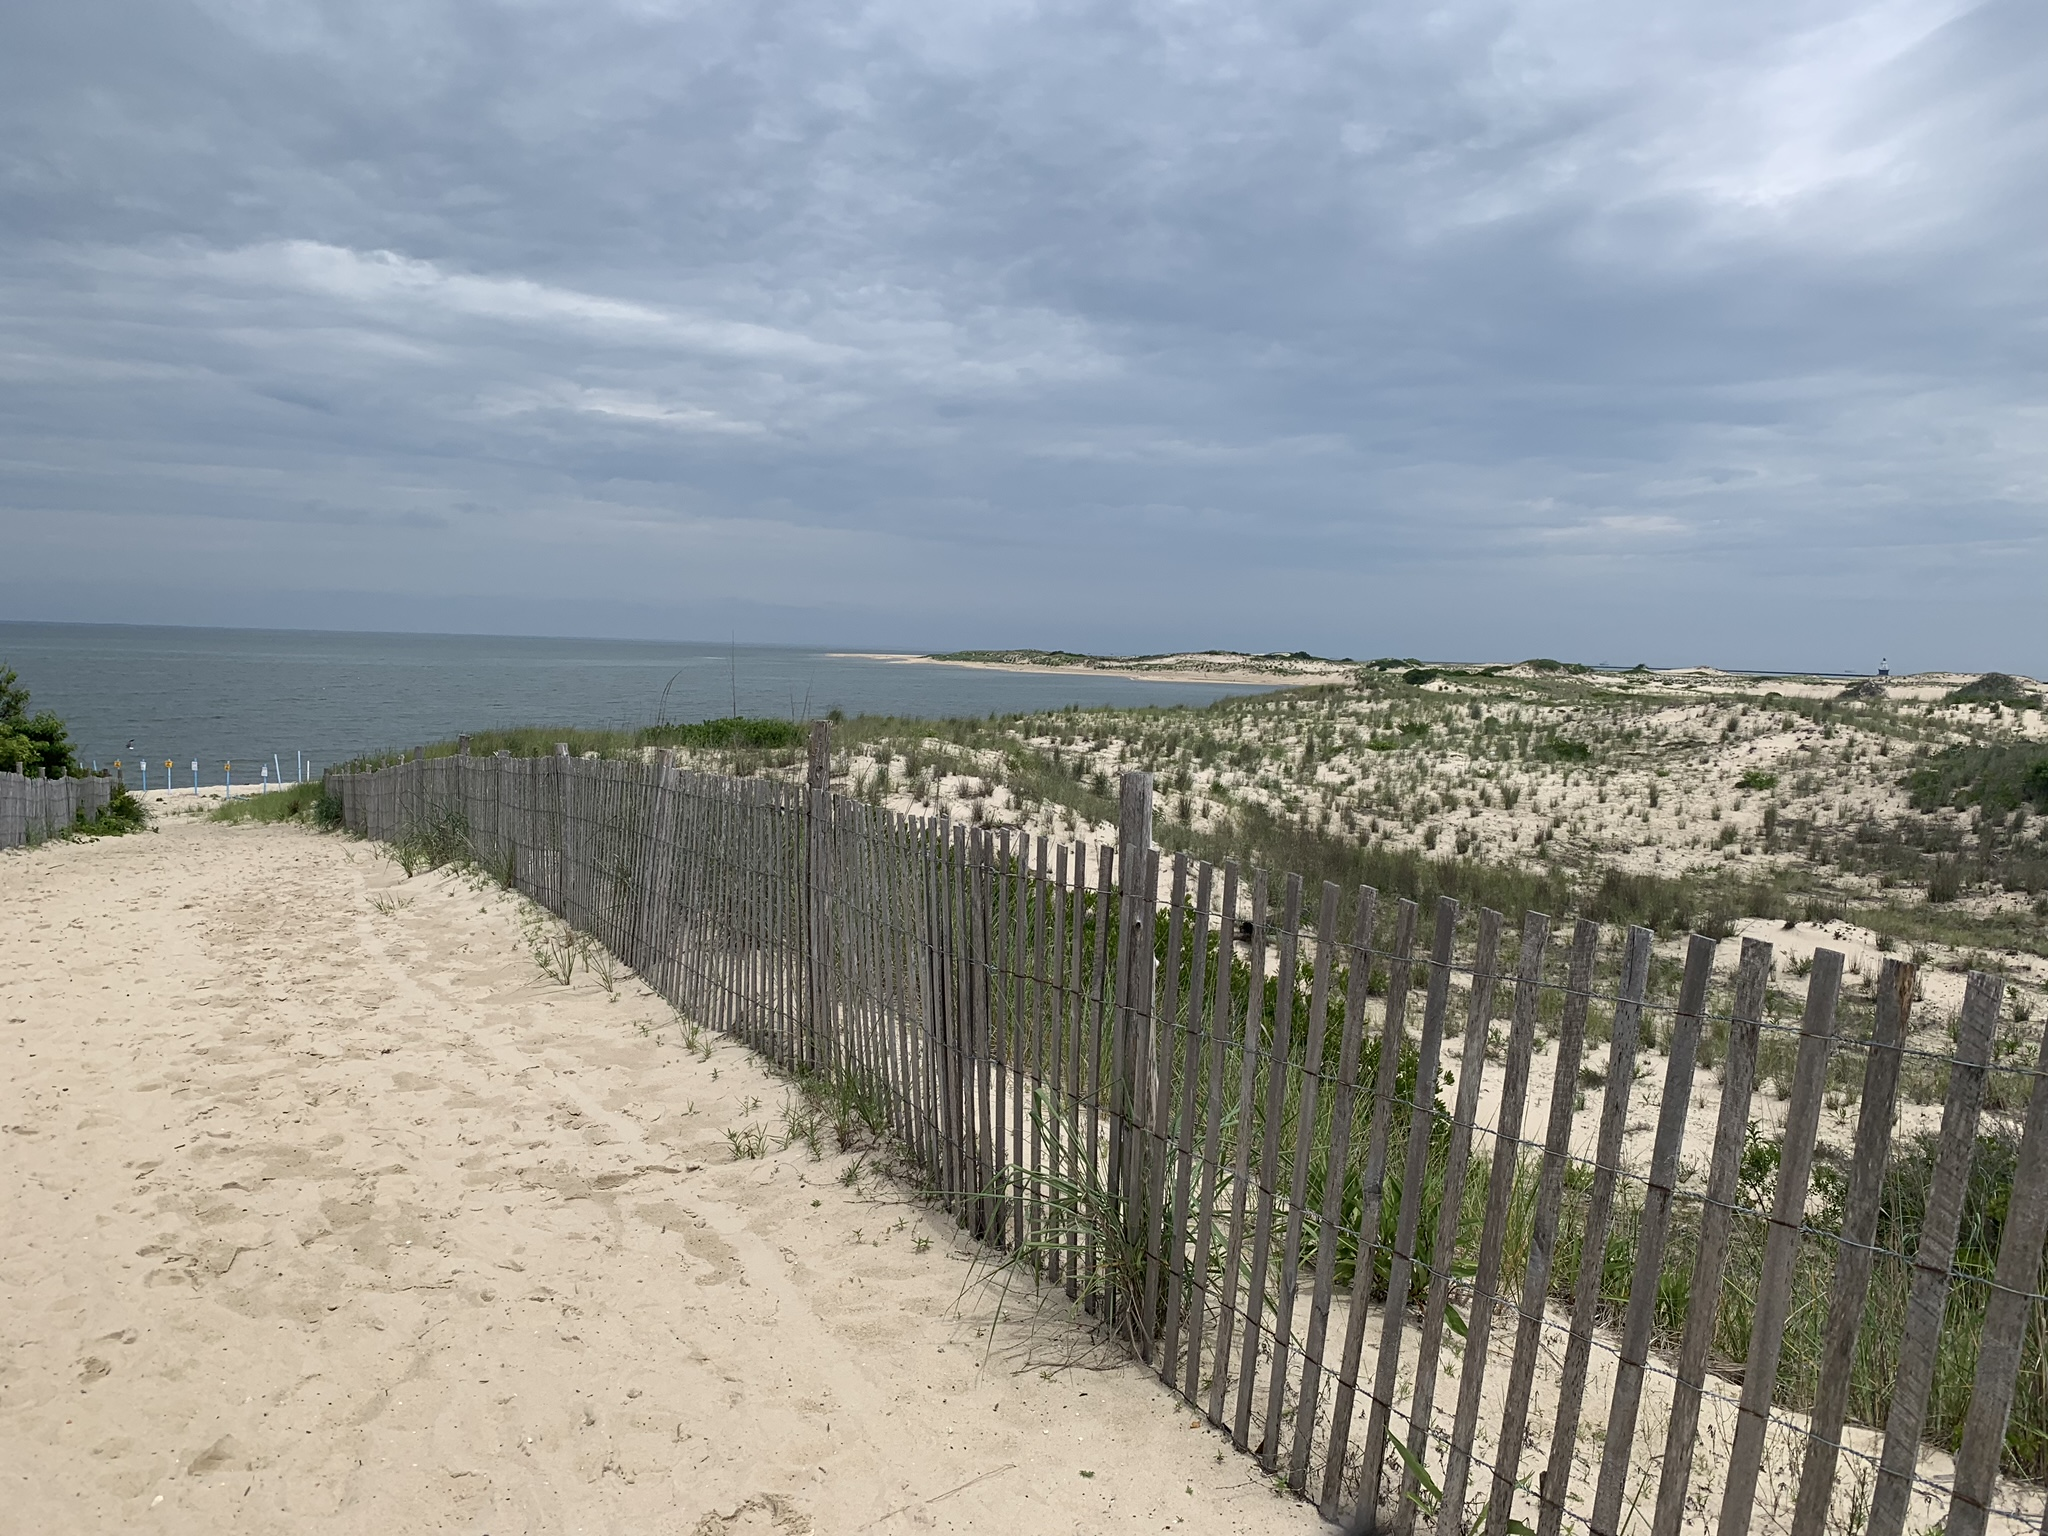 View of the Delaware Bay within Cape Henlopen State Park. This is along the bike trail.